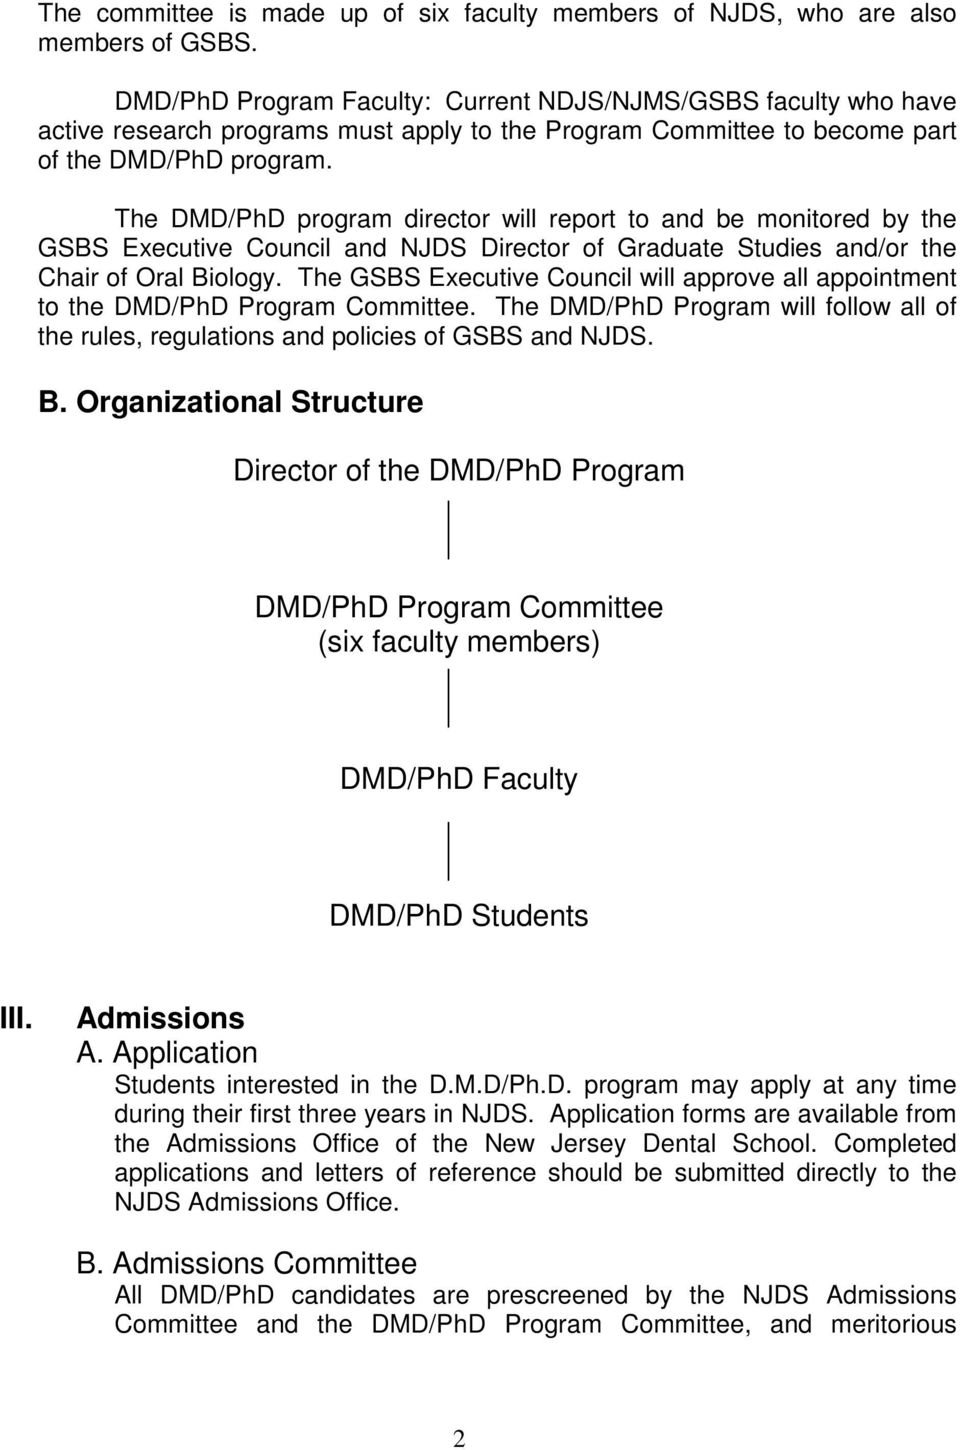 The DMD/PhD program director will report to and be monitored by the GSBS Executive Council and NJDS Director of Graduate Studies and/or the Chair of Oral Biology.